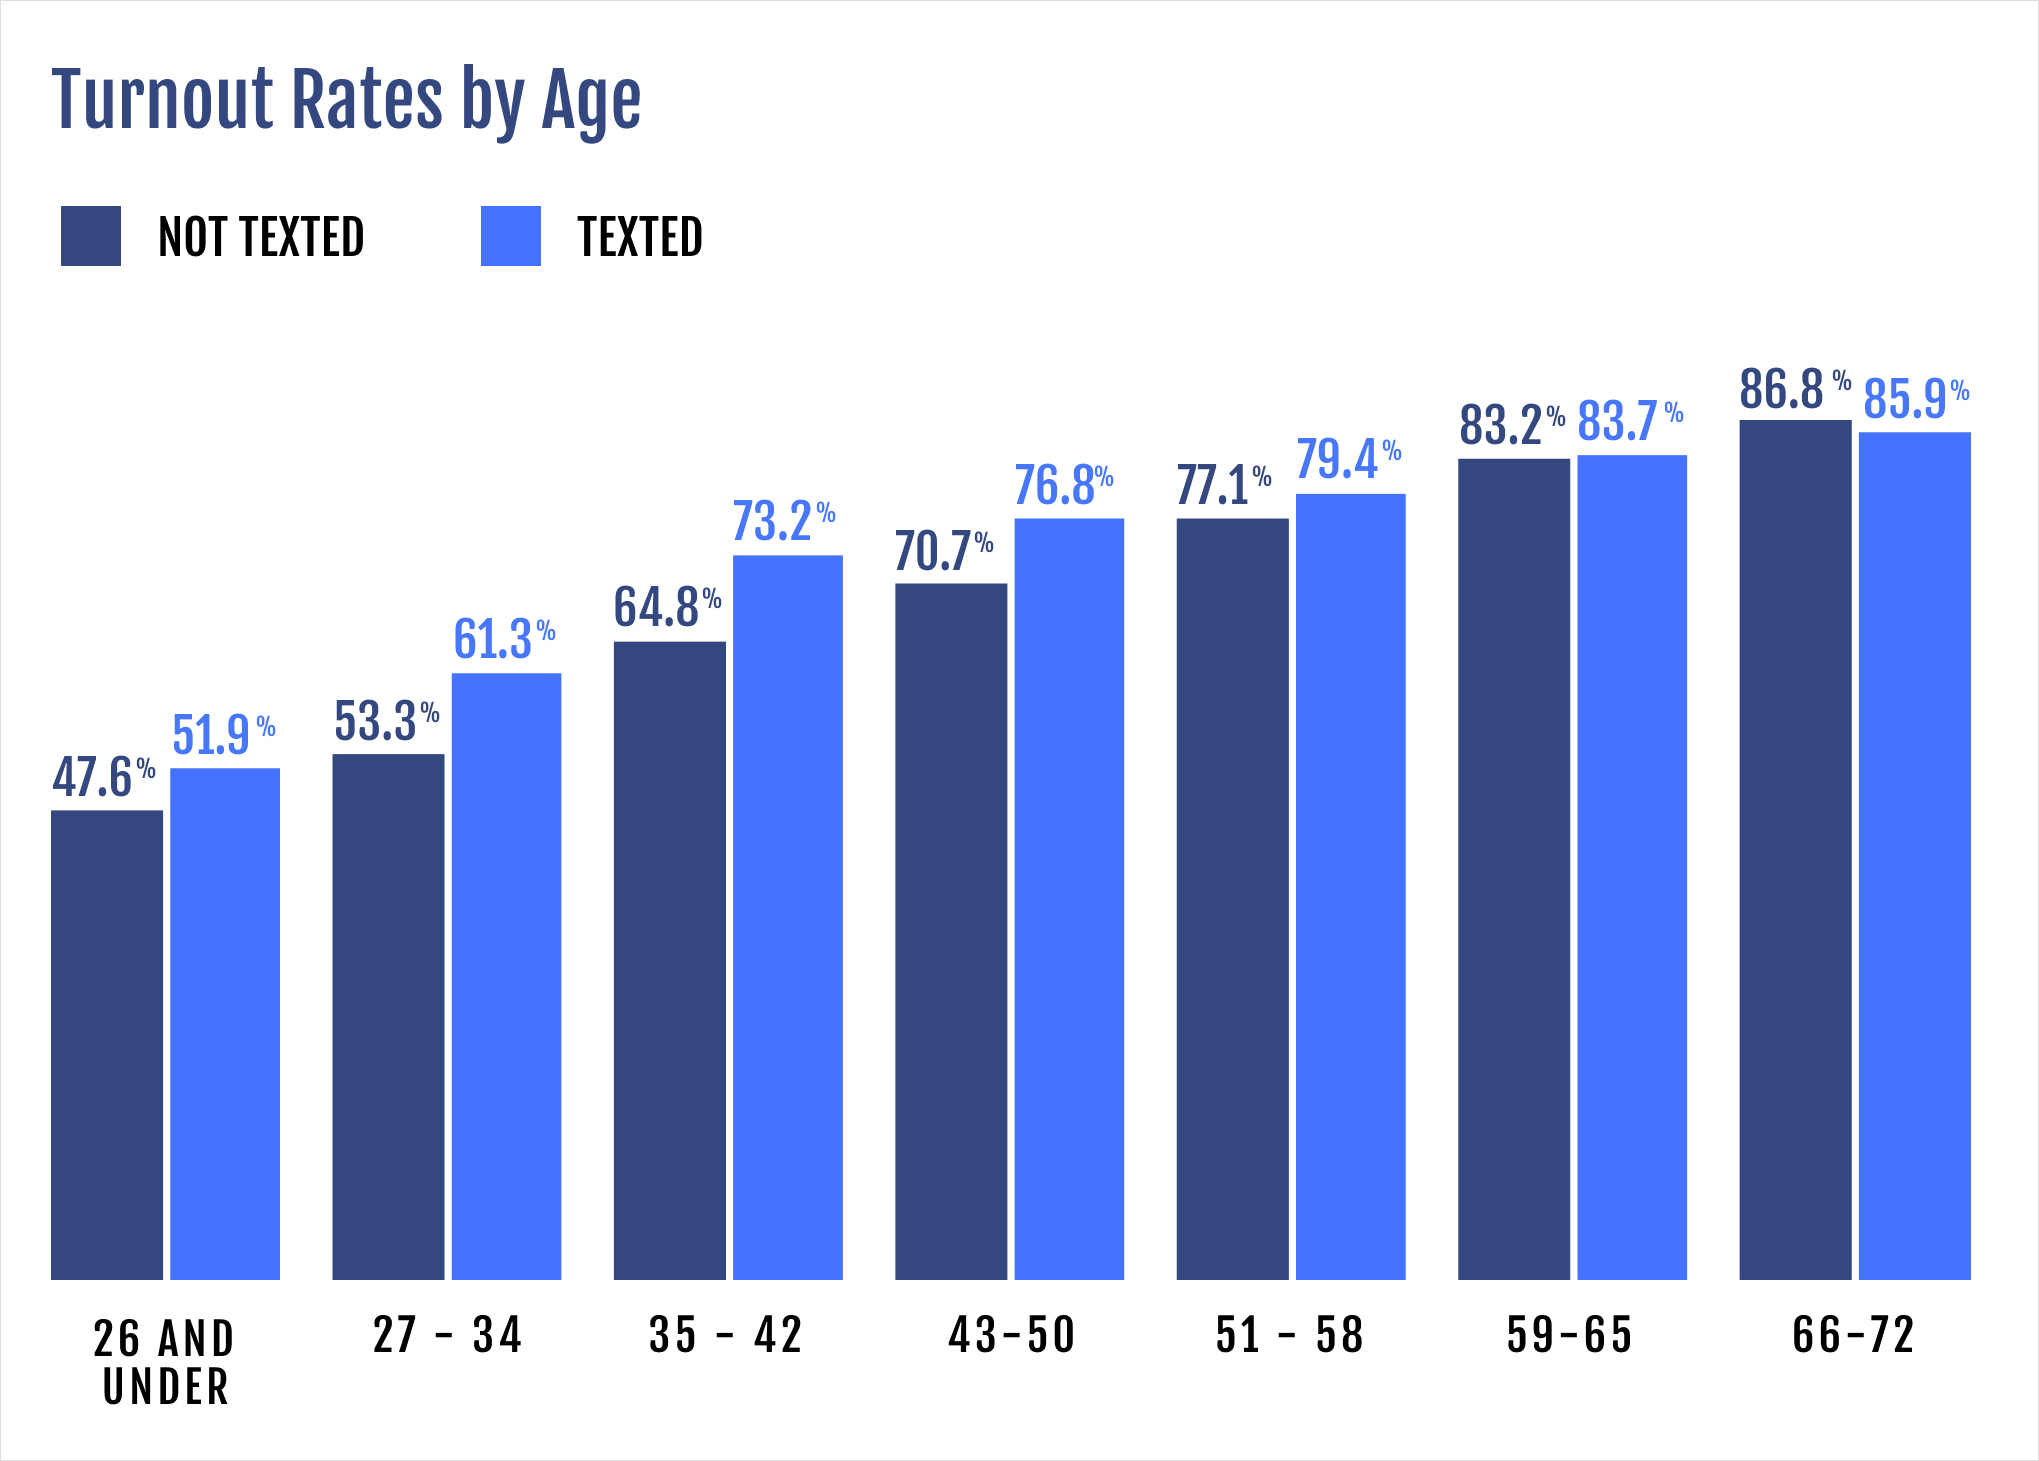 Turnout rates varied by age, and were impacted by being sent a text